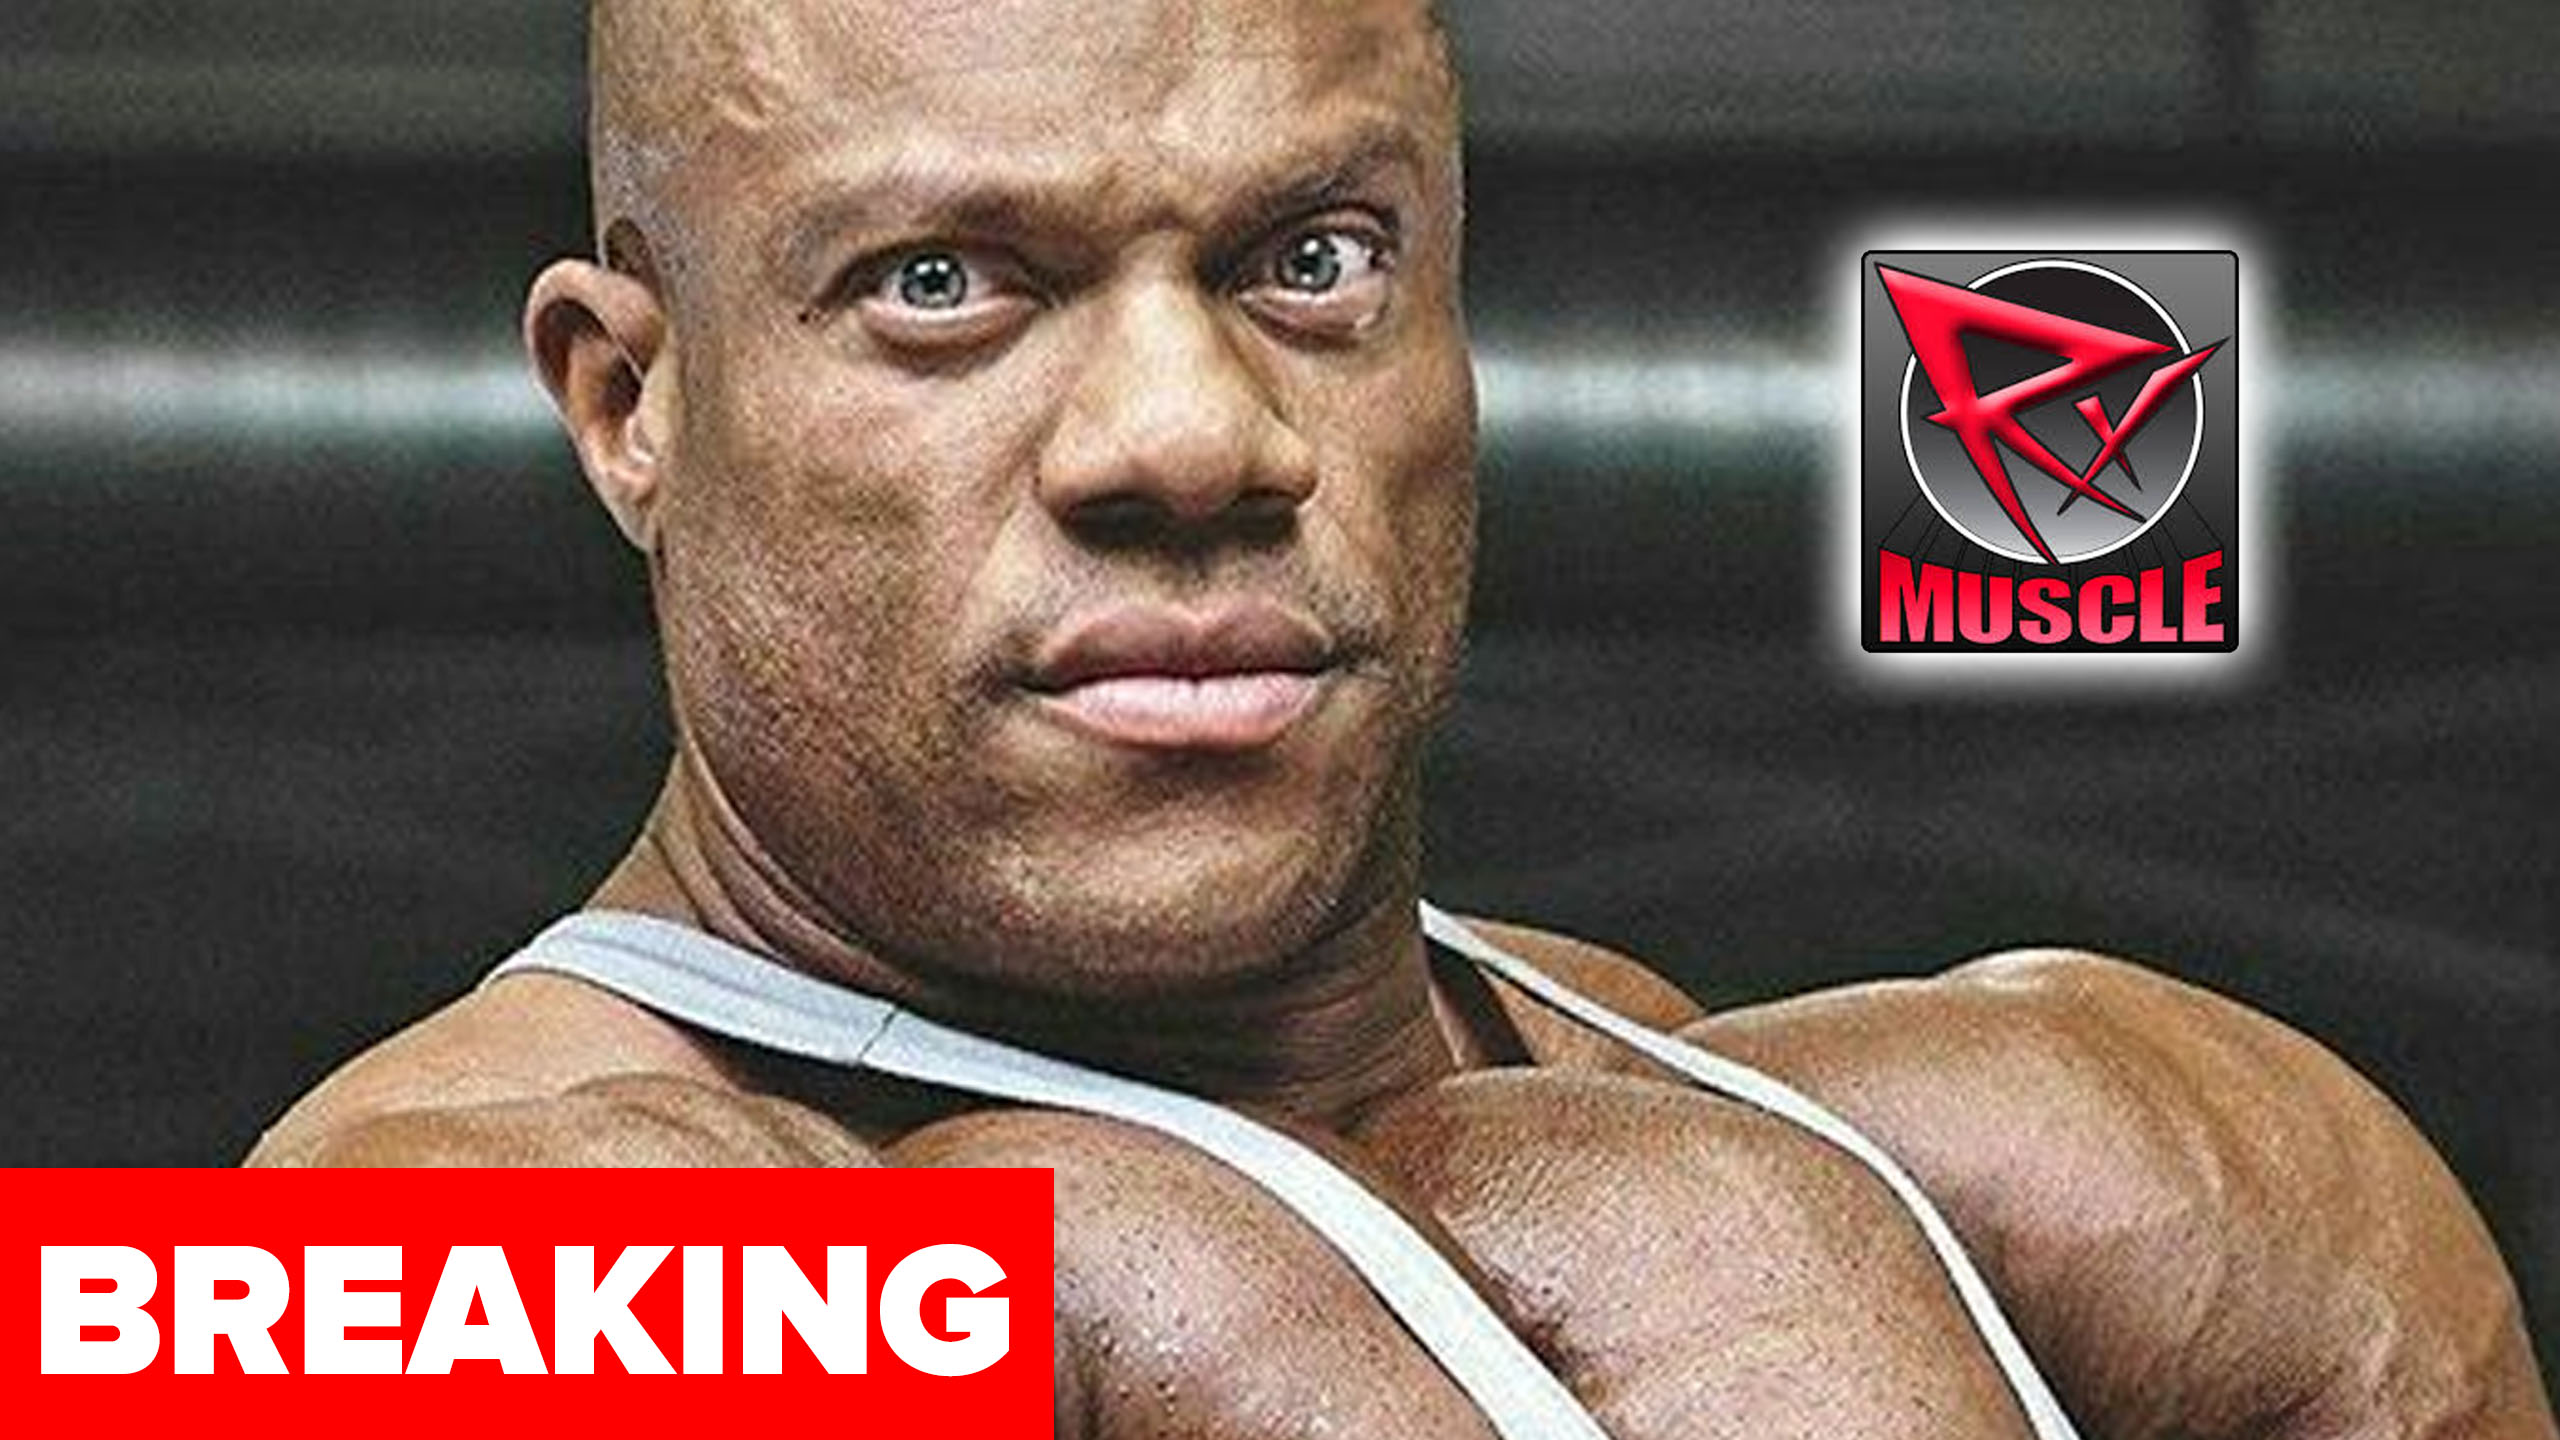 phil heath on rxmuscle